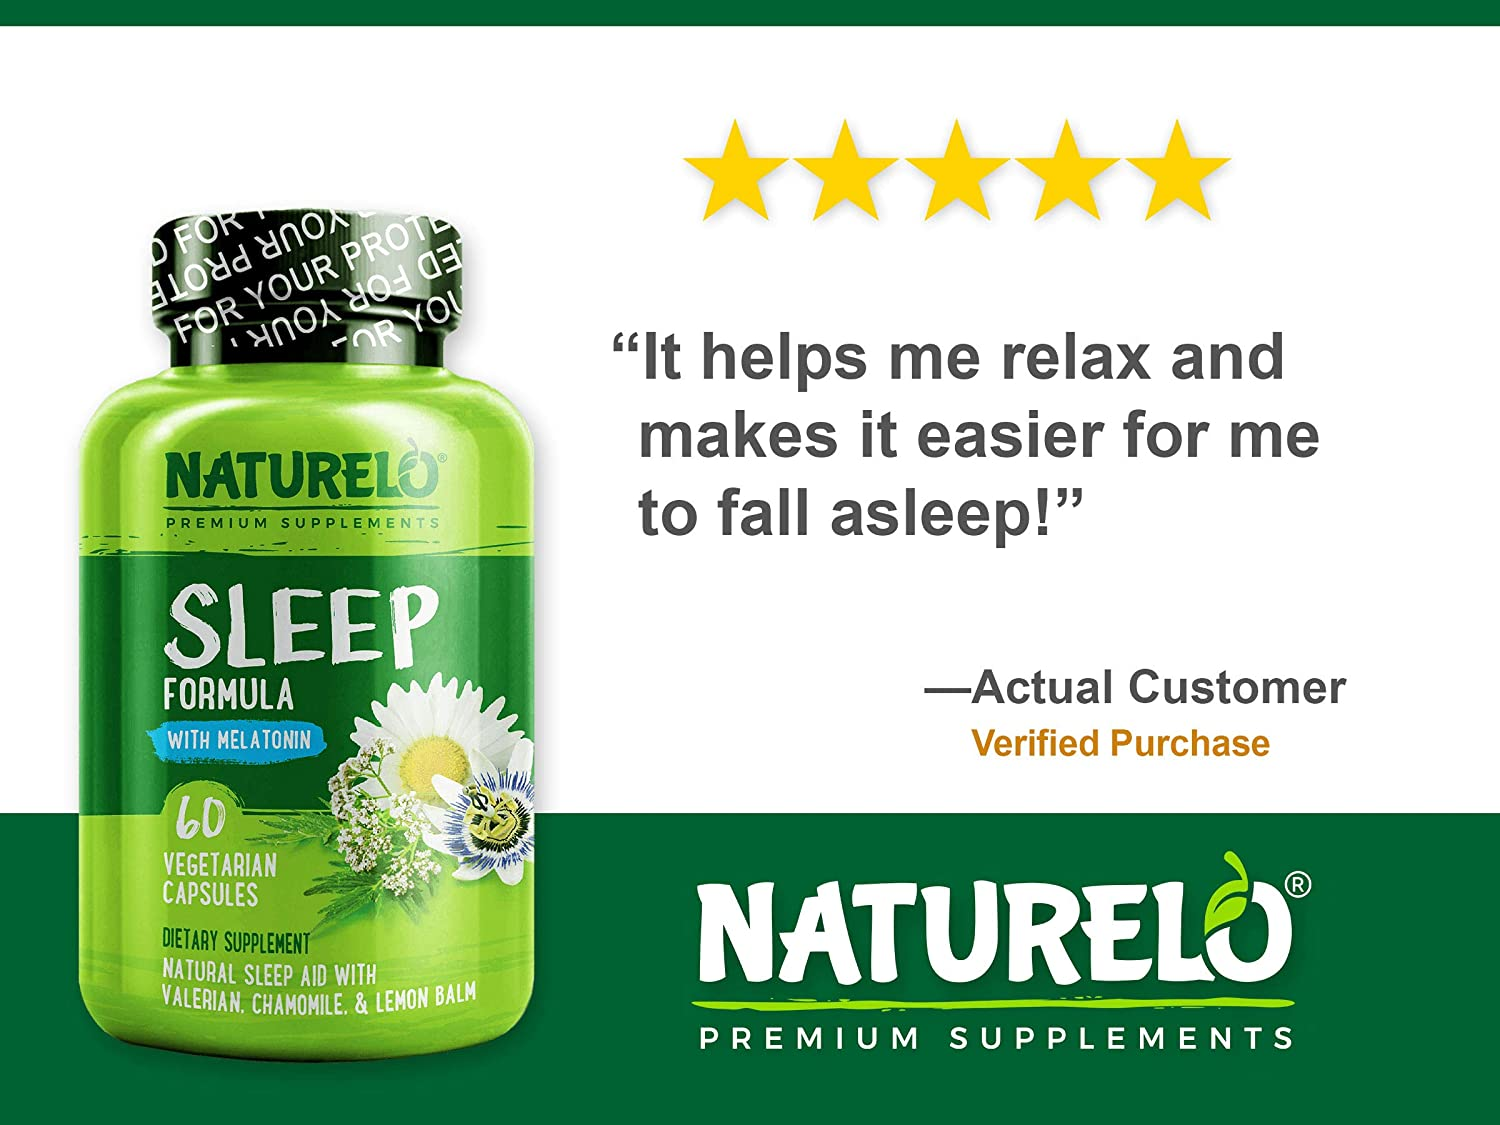 Amazon.com: NATURELO Sleep Formula - with Valerian, Chamomile, Passion Flower, Lemon Balm, Hops & Melatonin - Best Natural Sleeping Aid - Fast Dissolve - 60 ...